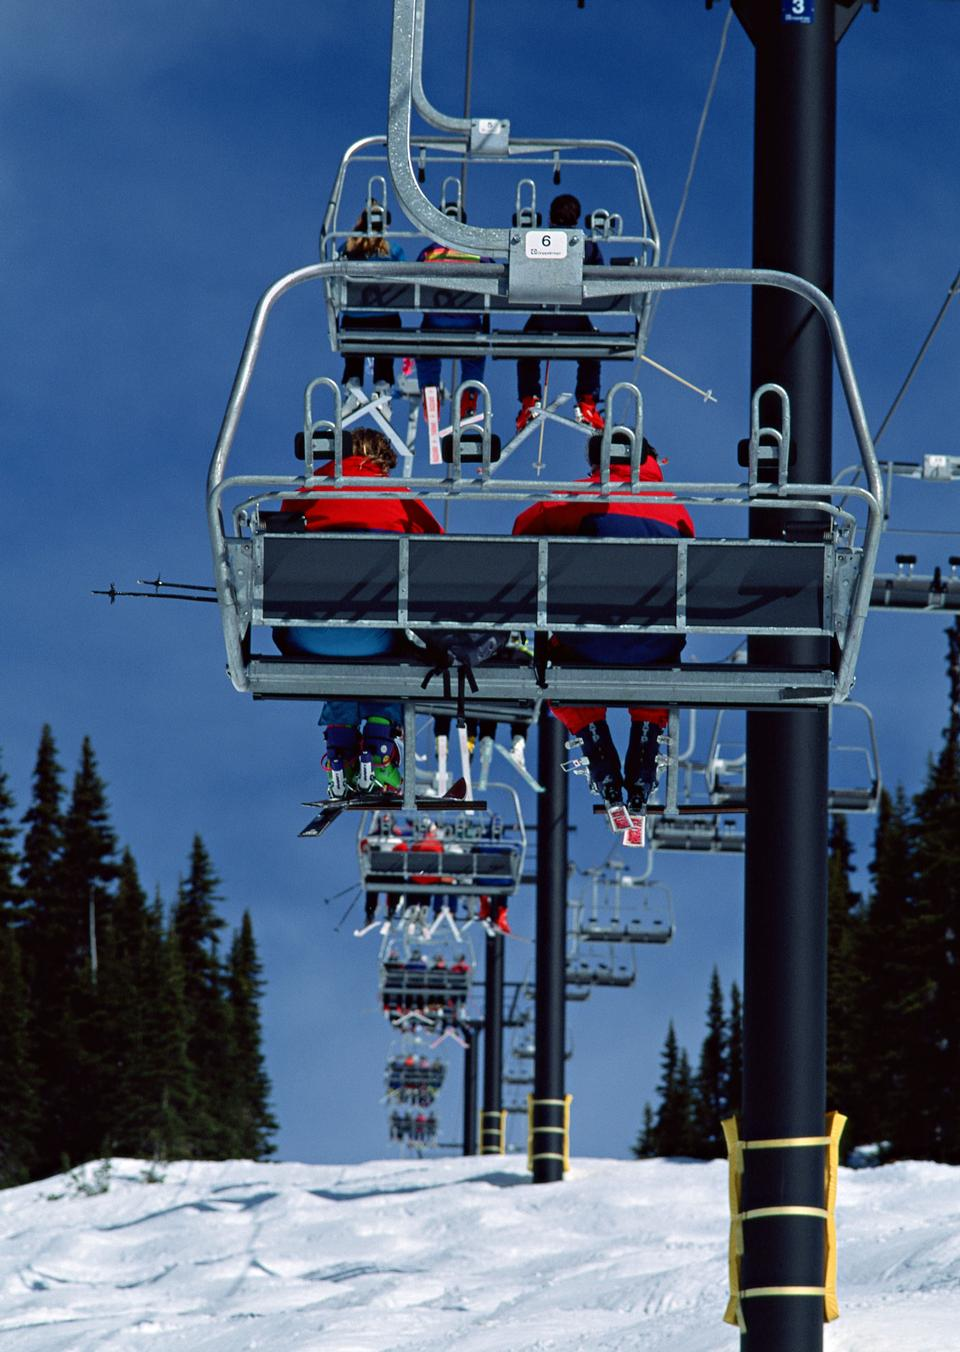 Skiers and snowboarders on a ski lift